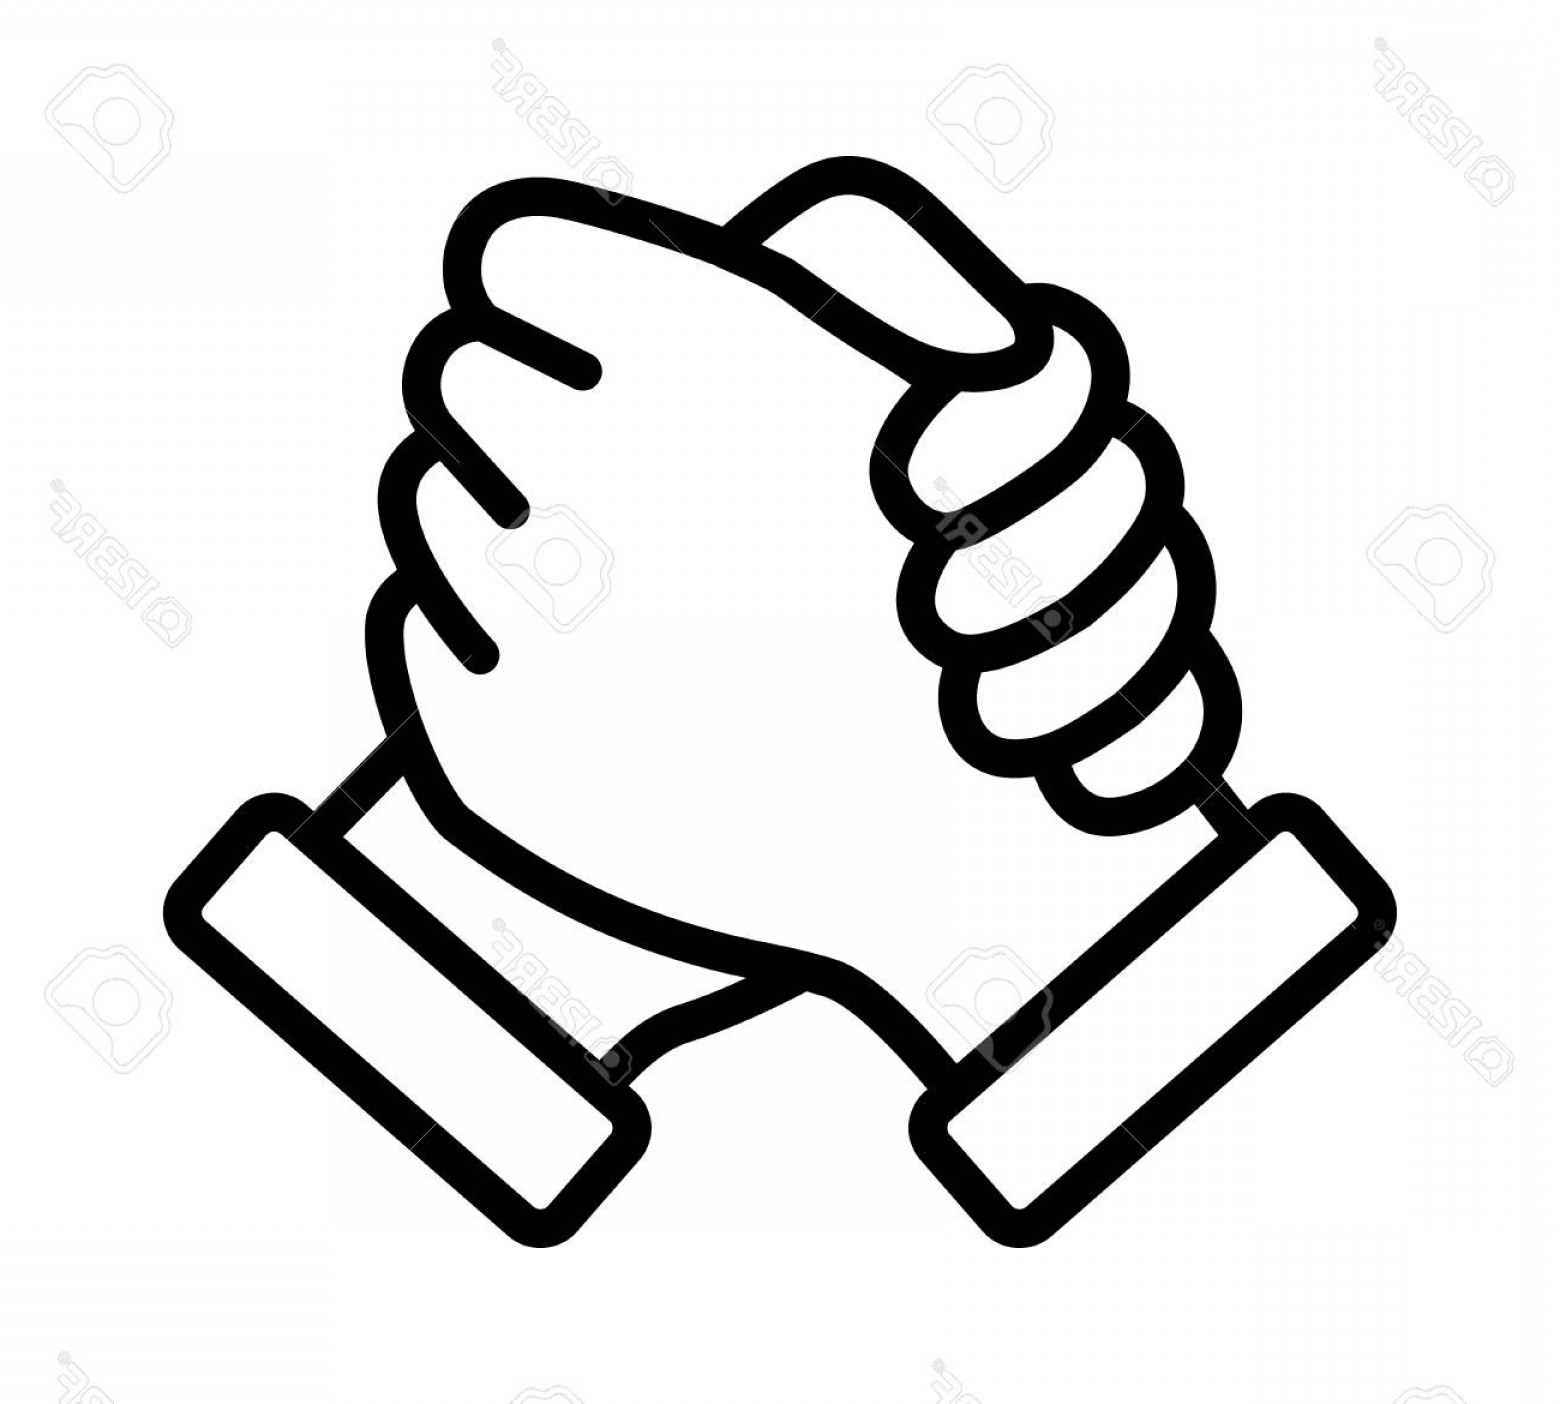 Handshake Clip Art Vector: Photostock Vector Soul Brother Handshake Thumb Clasp Handshake Or Homie Handshake Line Art Vector Icon For Apps And We